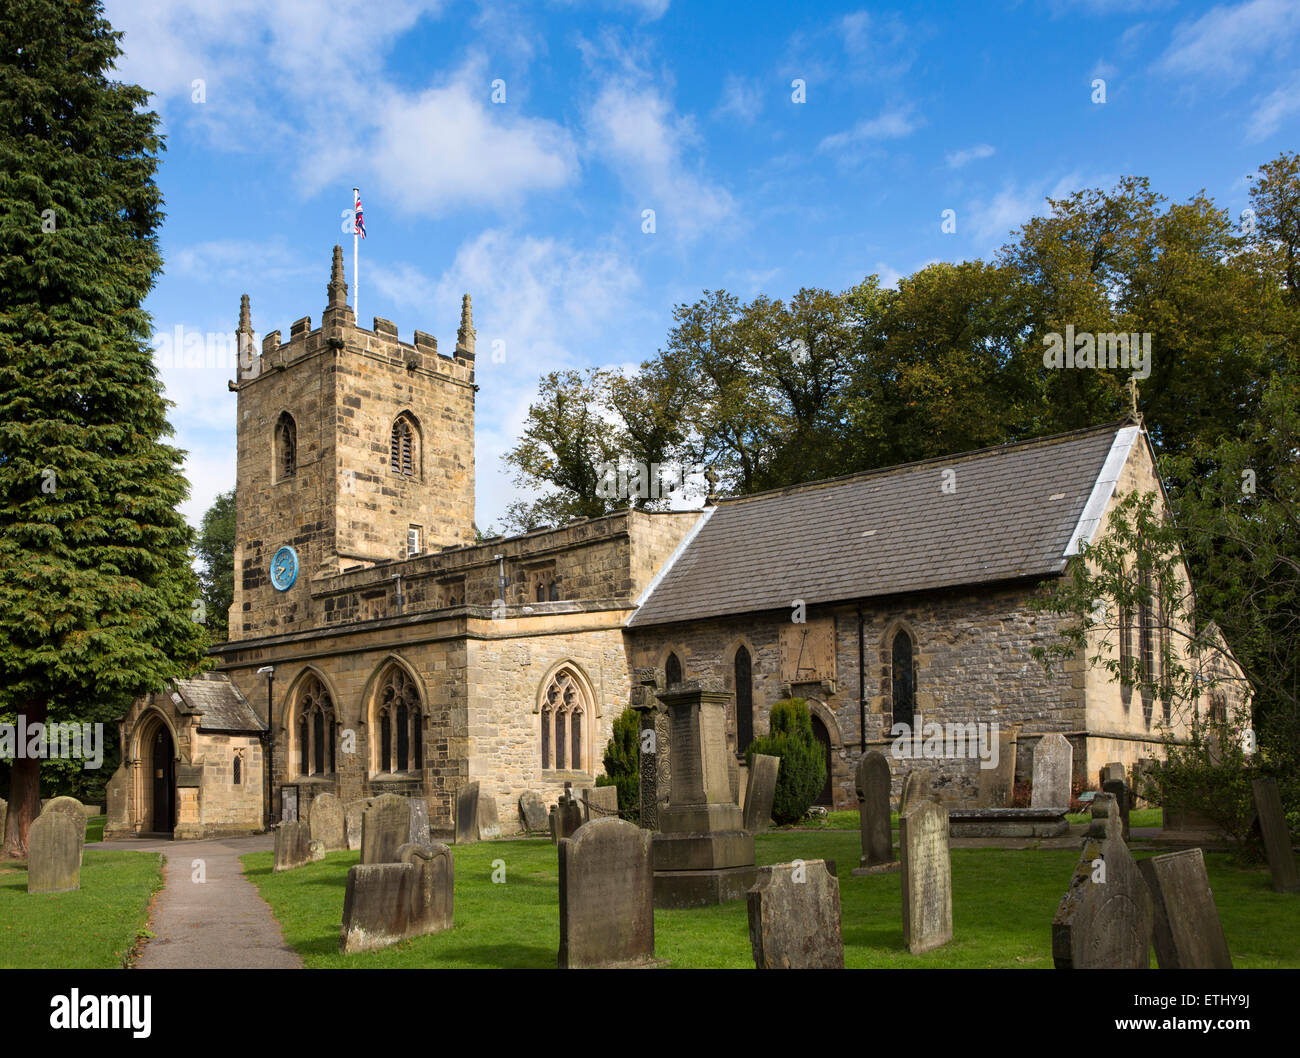 UK, England, Derbyshire, Eyam, Parich Church of St Lawrence - Stock Image